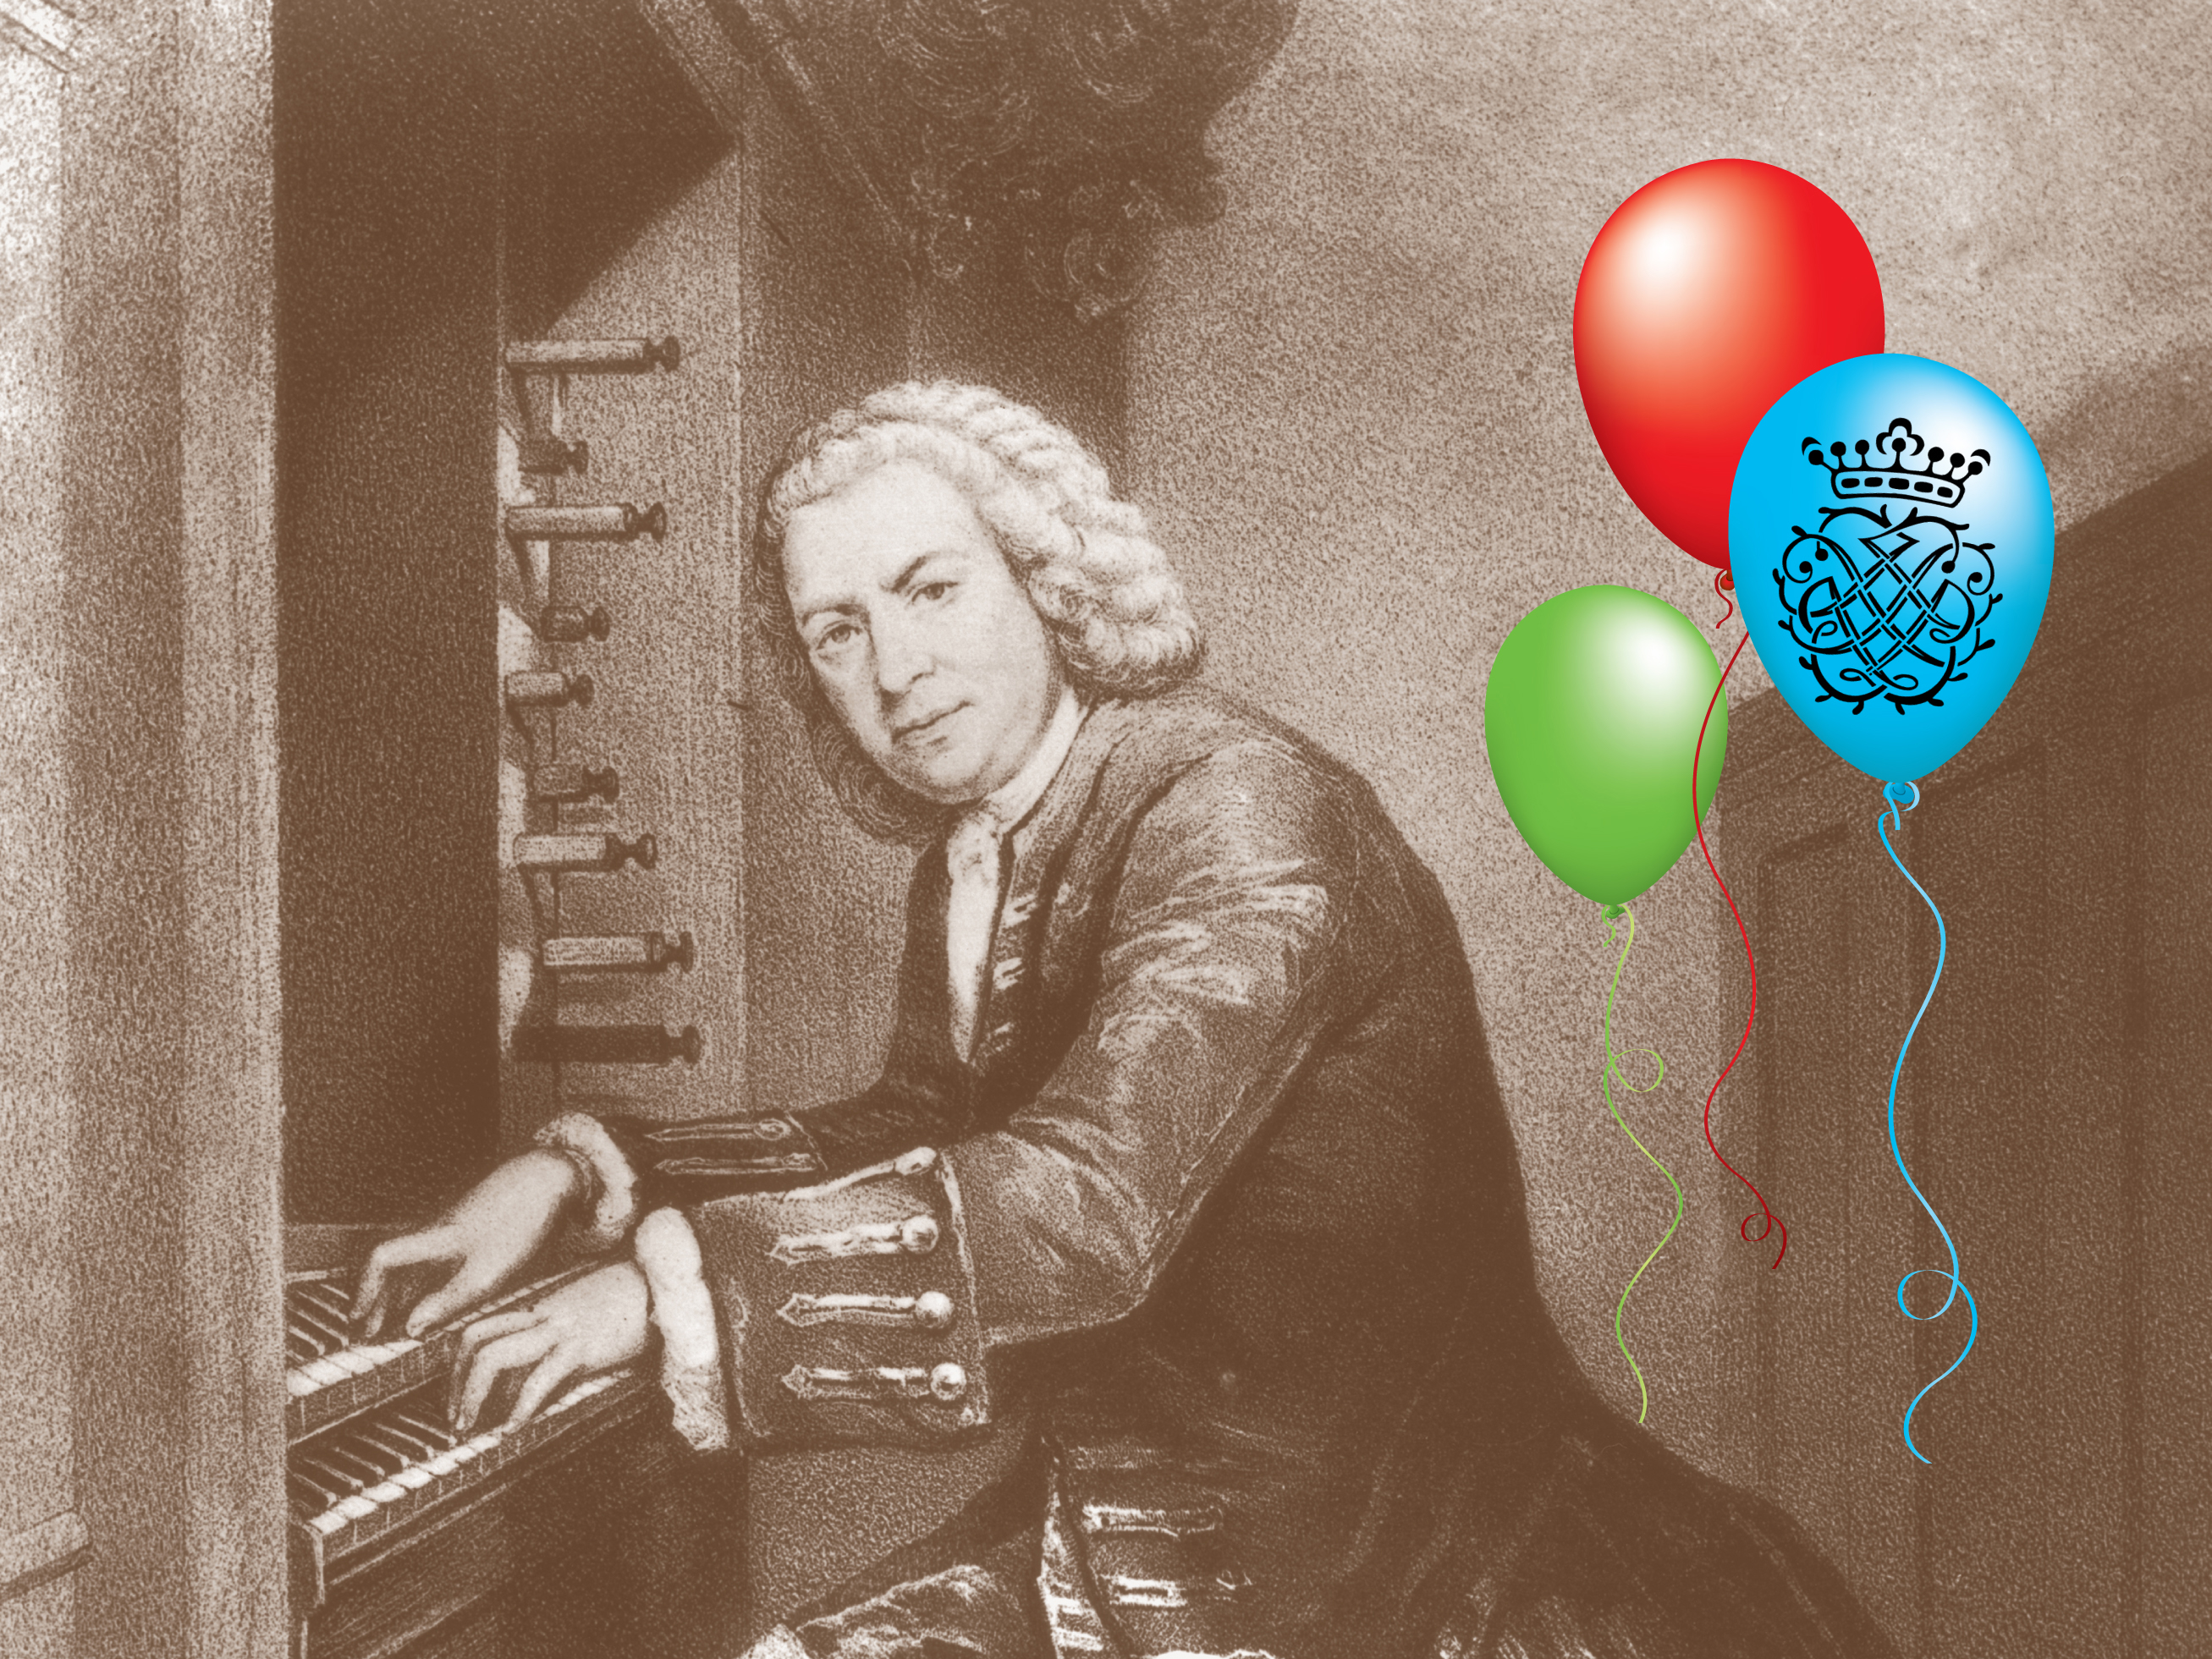 bach-bday-bckgrnd-no-text-cropped